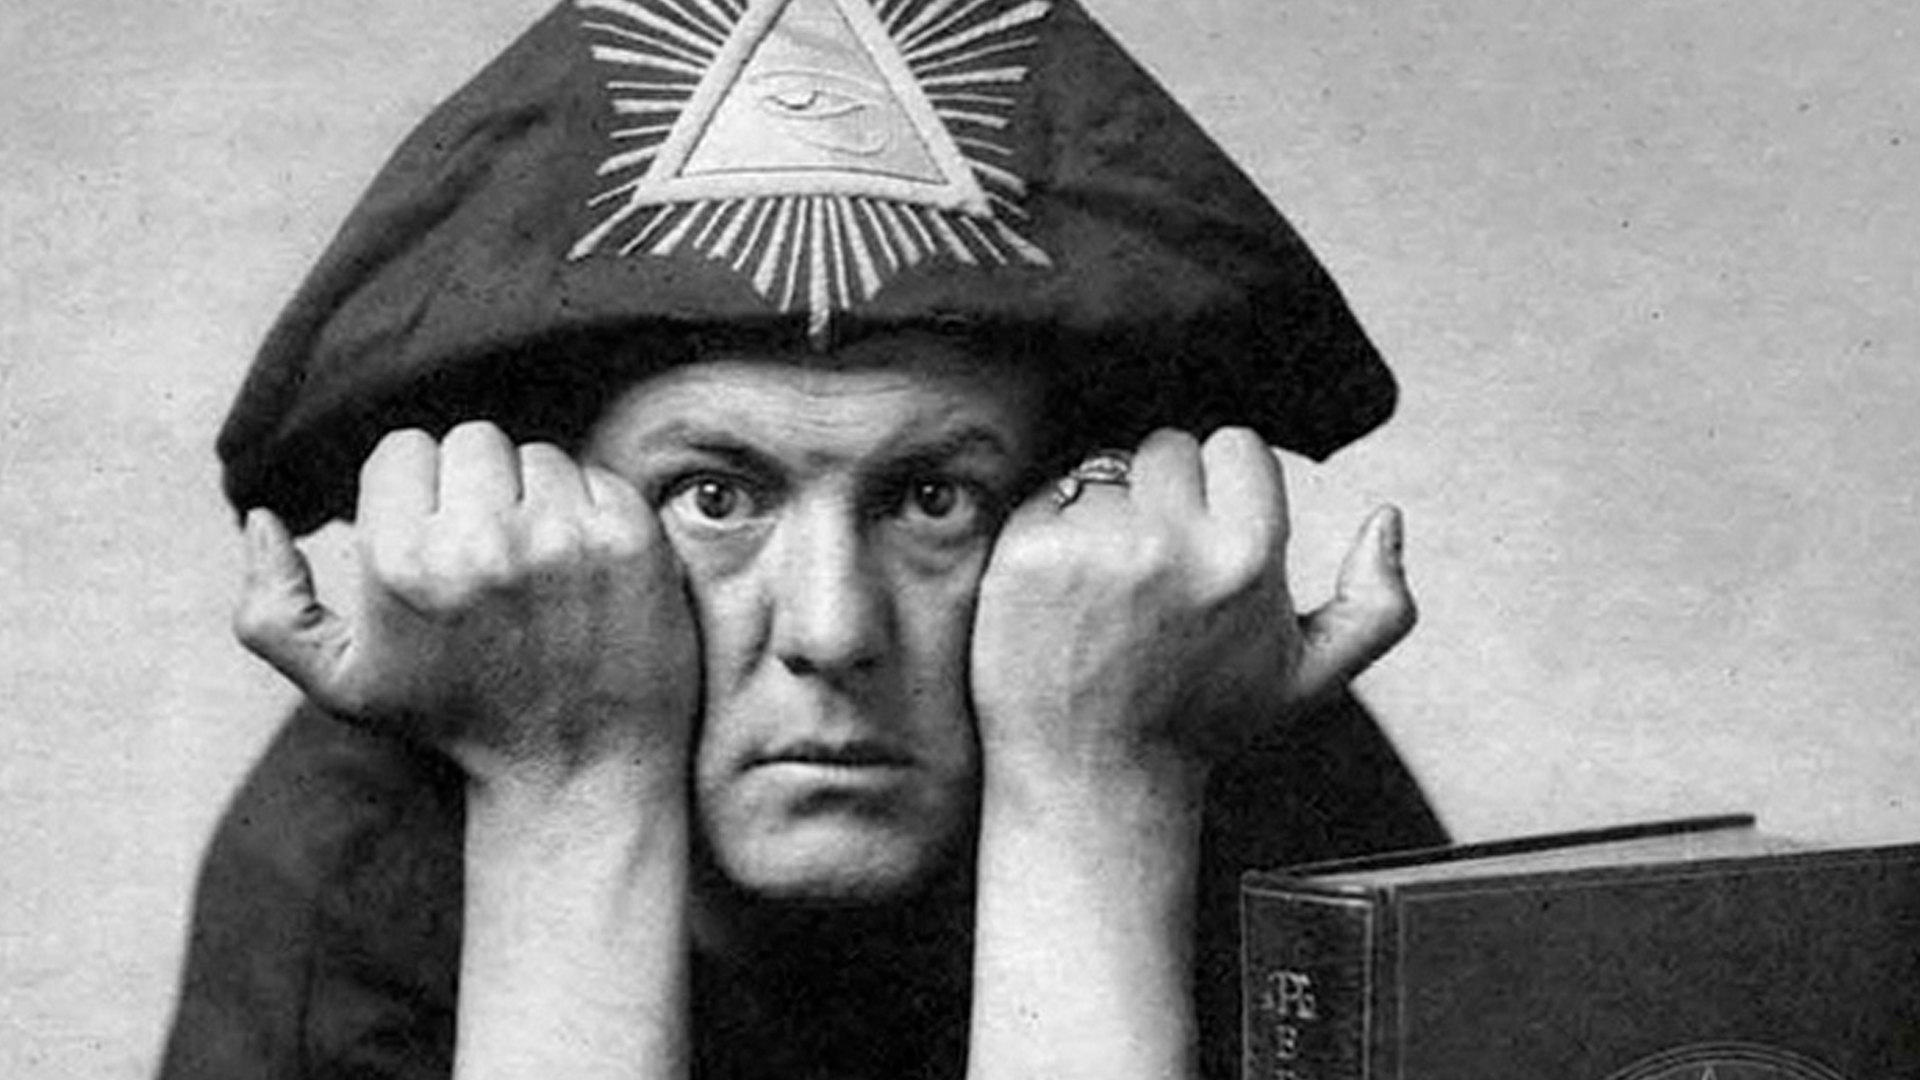 Aleister Crowley (source: Google)